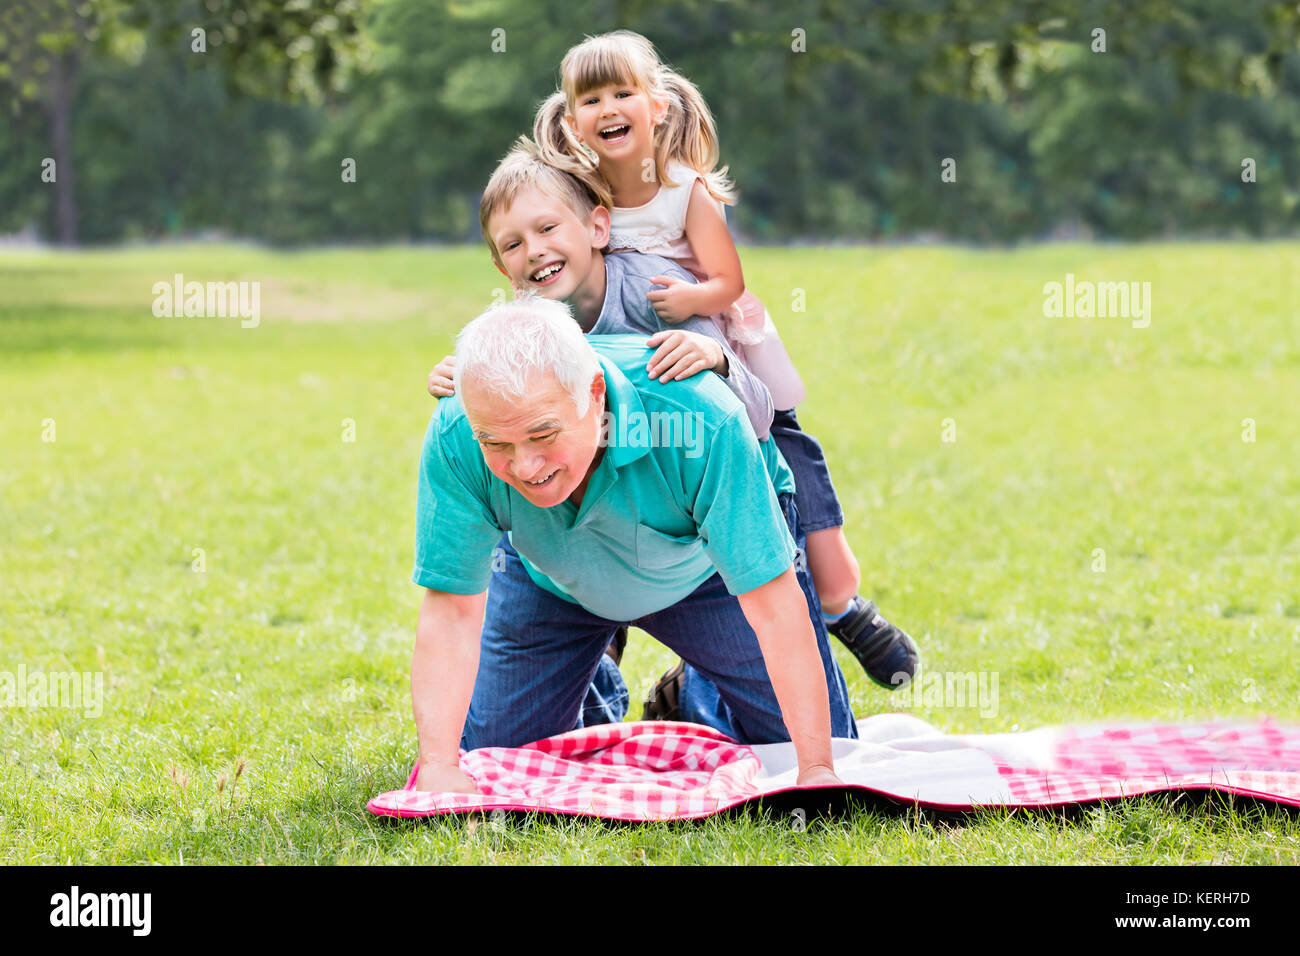 Heureux grand-père de deux enfants plus âgés lying on grass in park Photo Stock